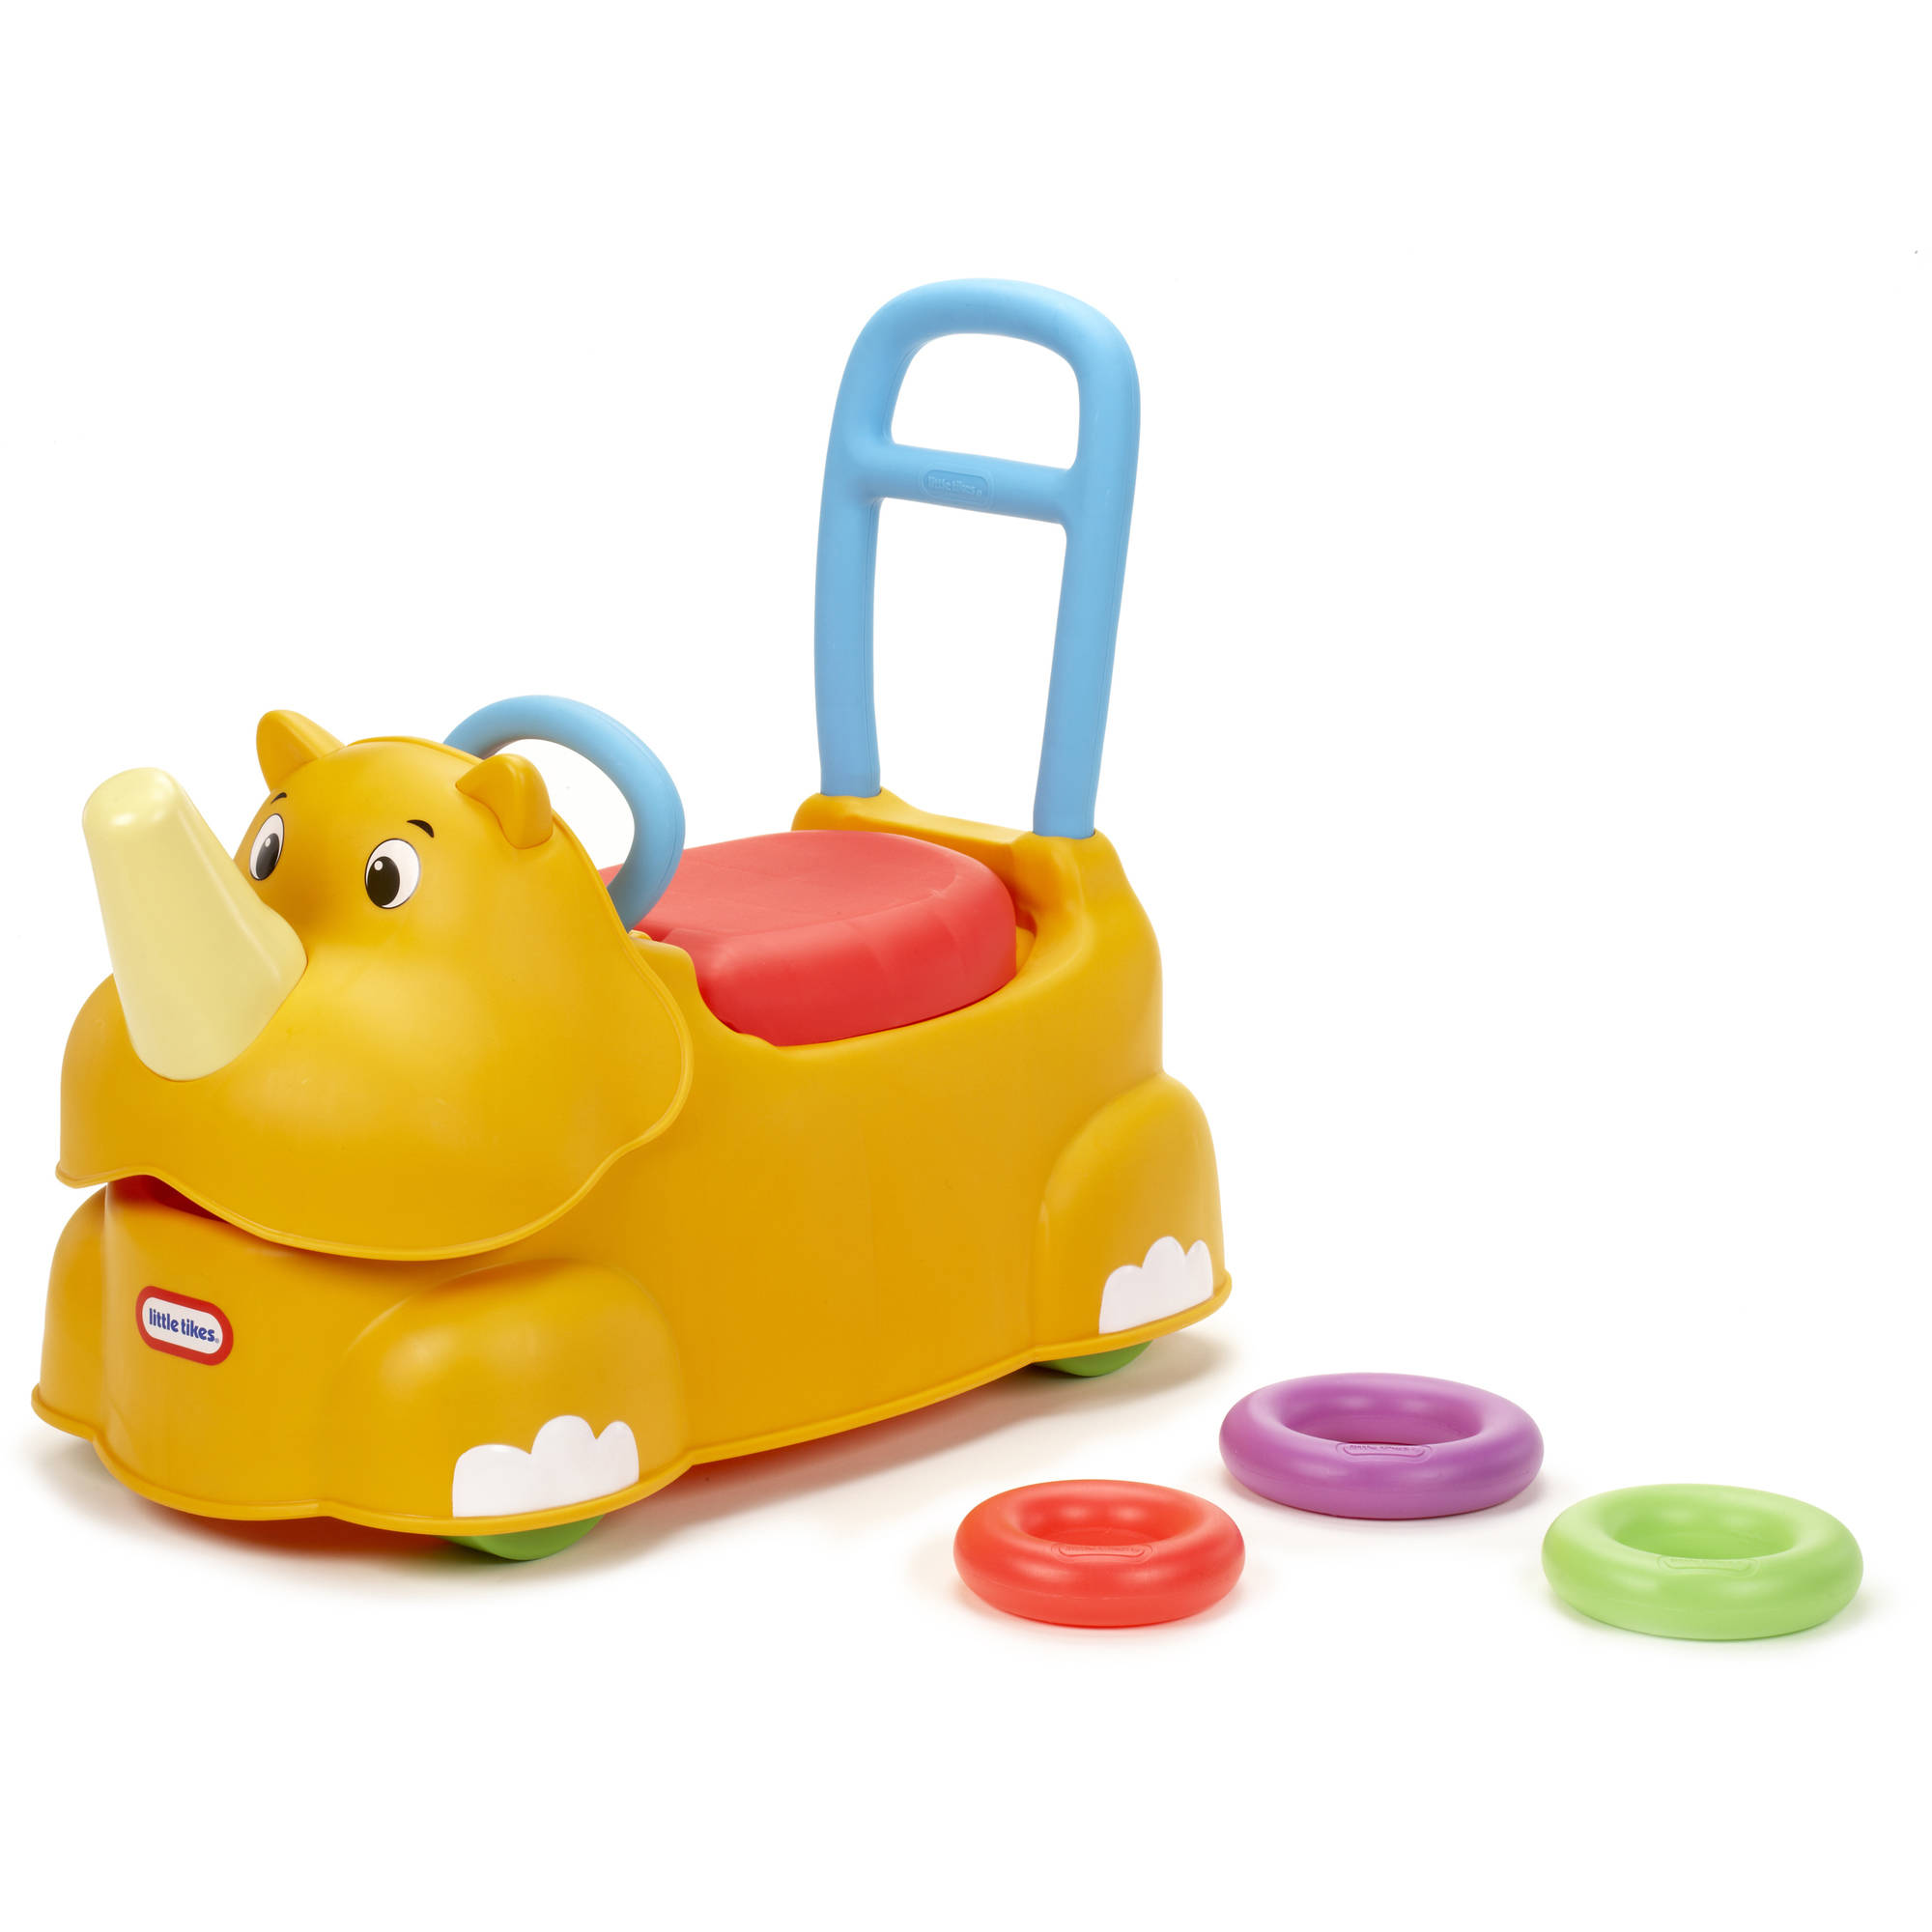 Little Tikes Scoot-Around Animal Riding Toy, Rhino